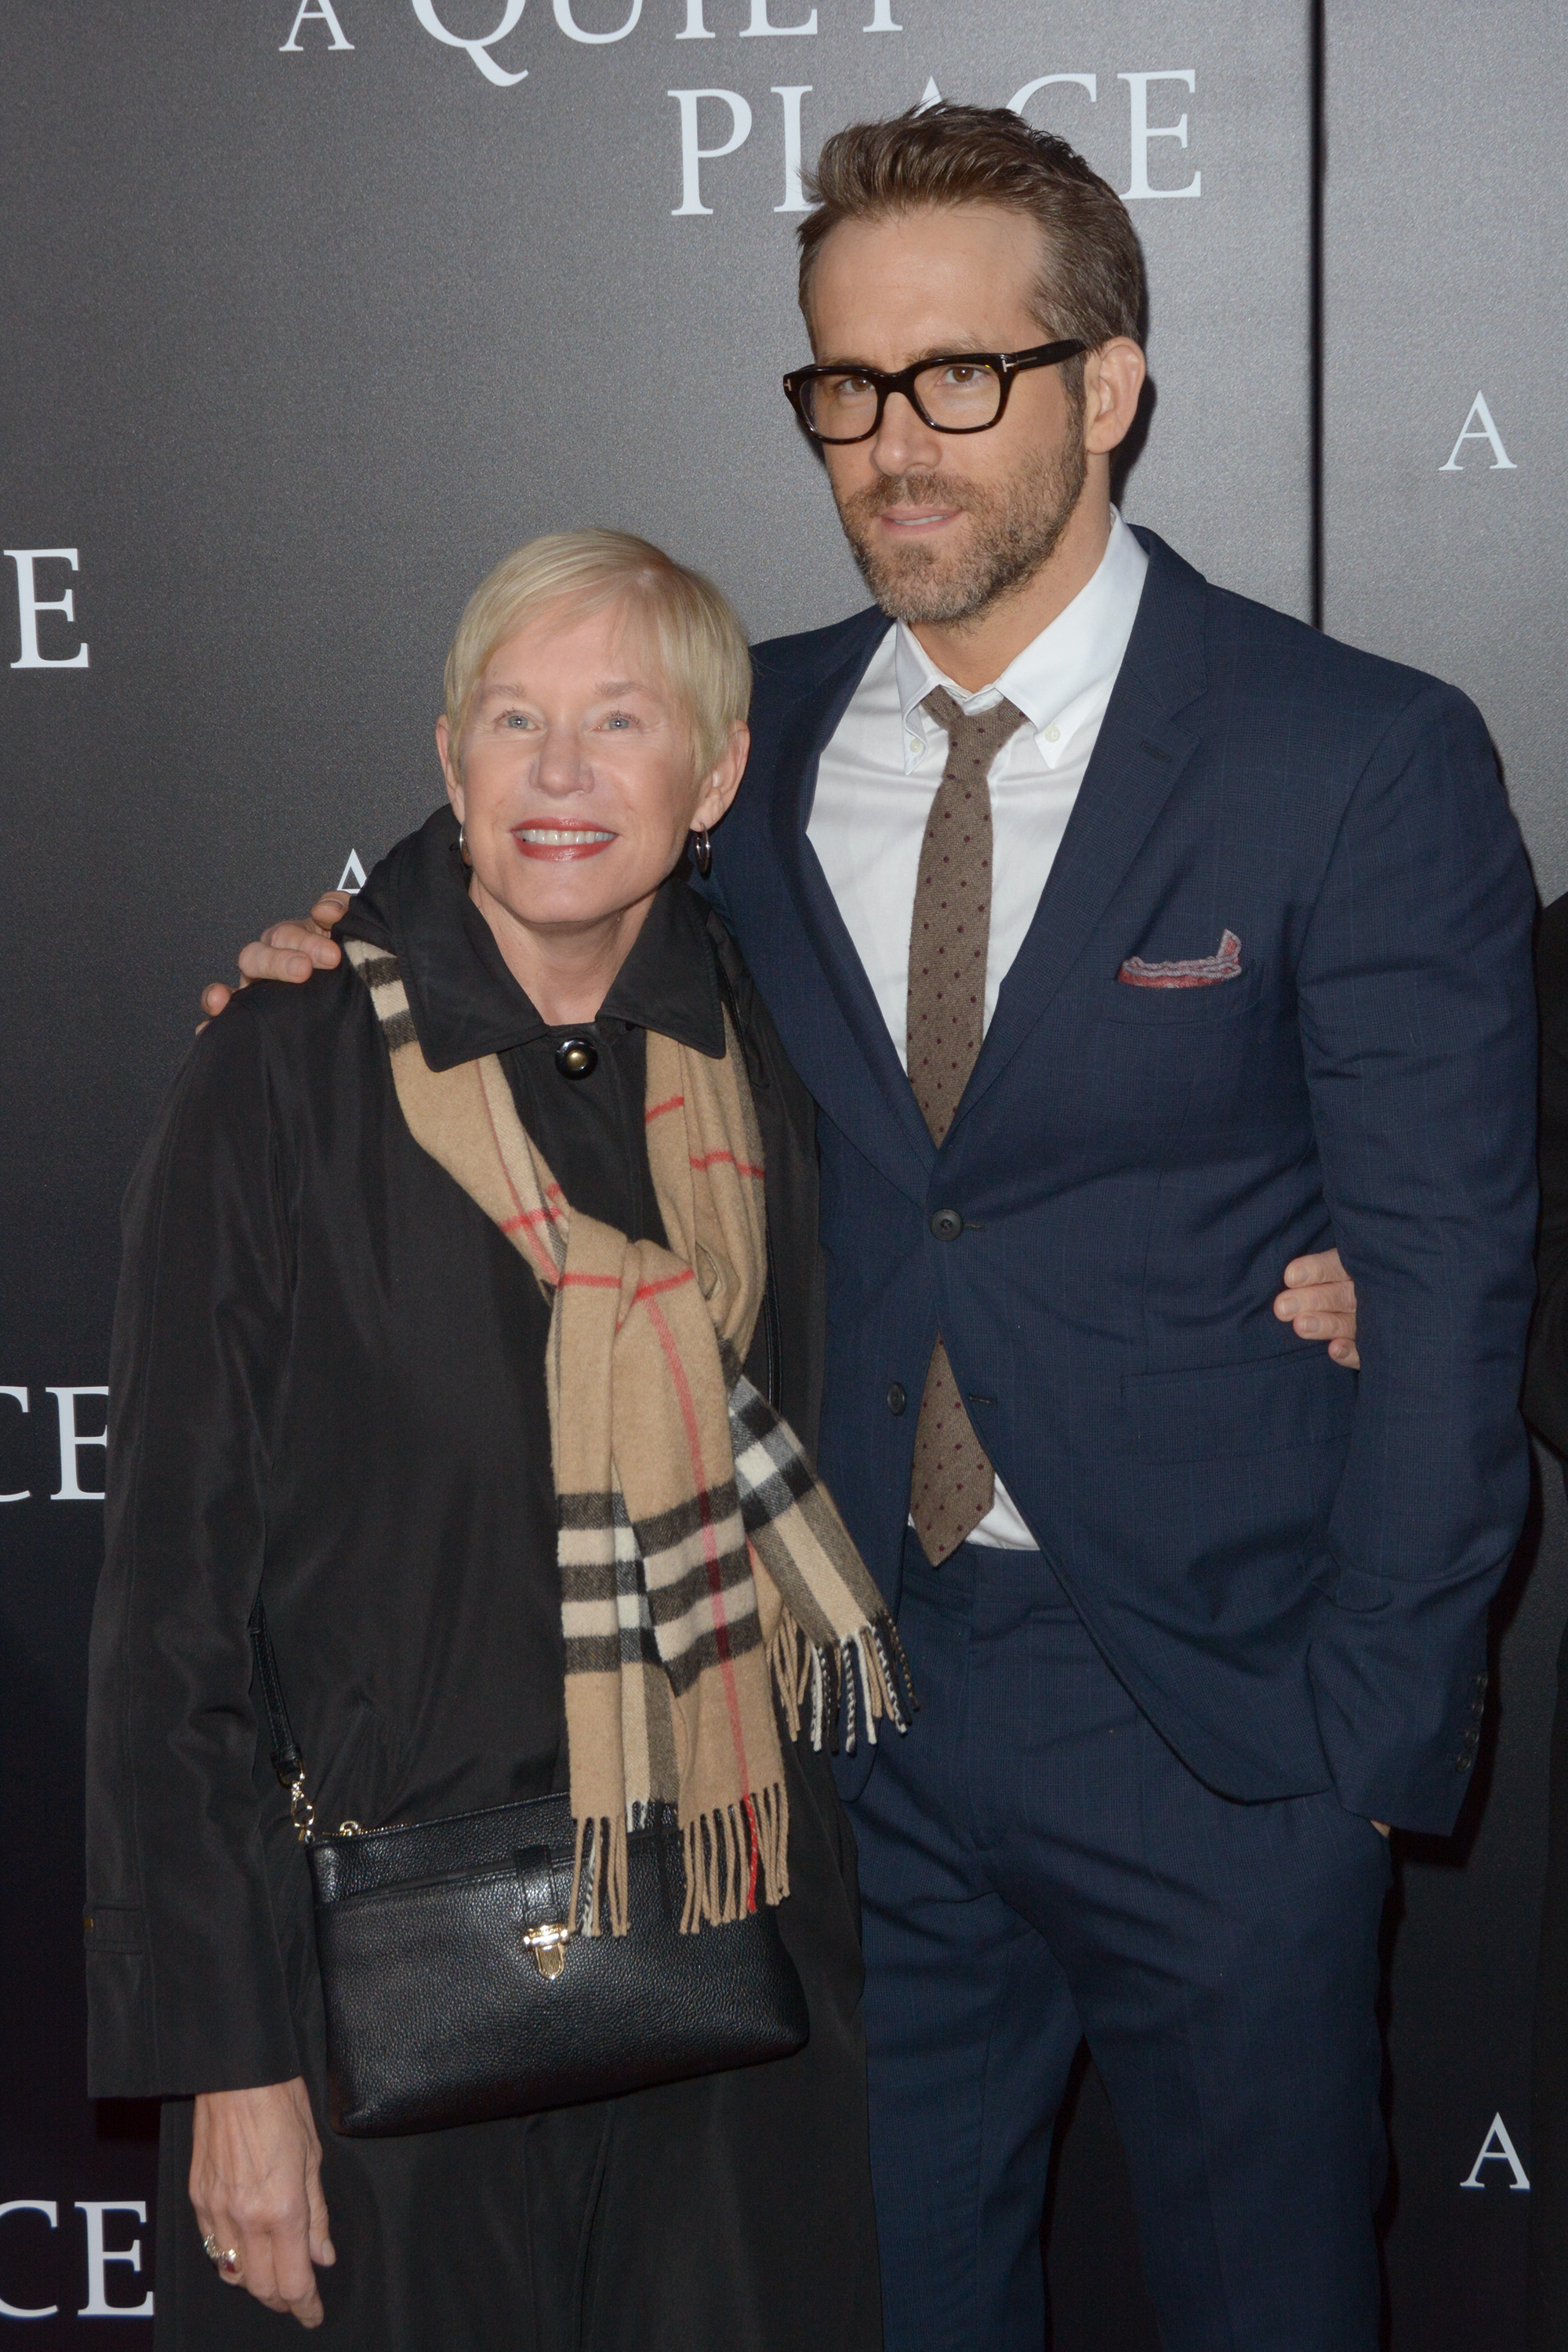 Ryan Reynolds and her mom Tammy at the New York premiere of A Quiet Place. (Photo: WENN)